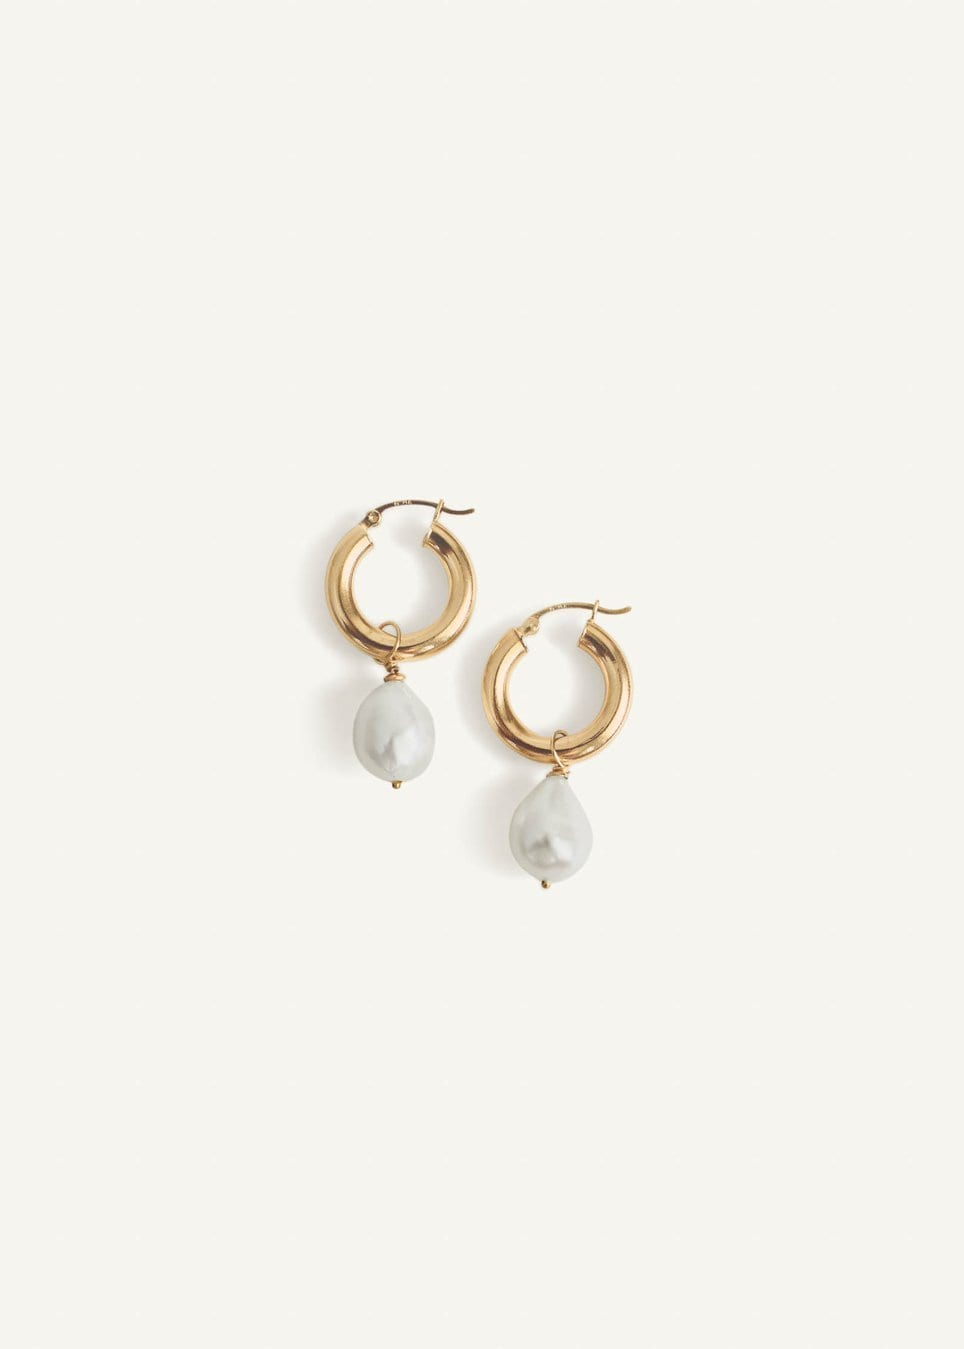 Baroque Pearl Hoop Earrings / Neighborhood Goods